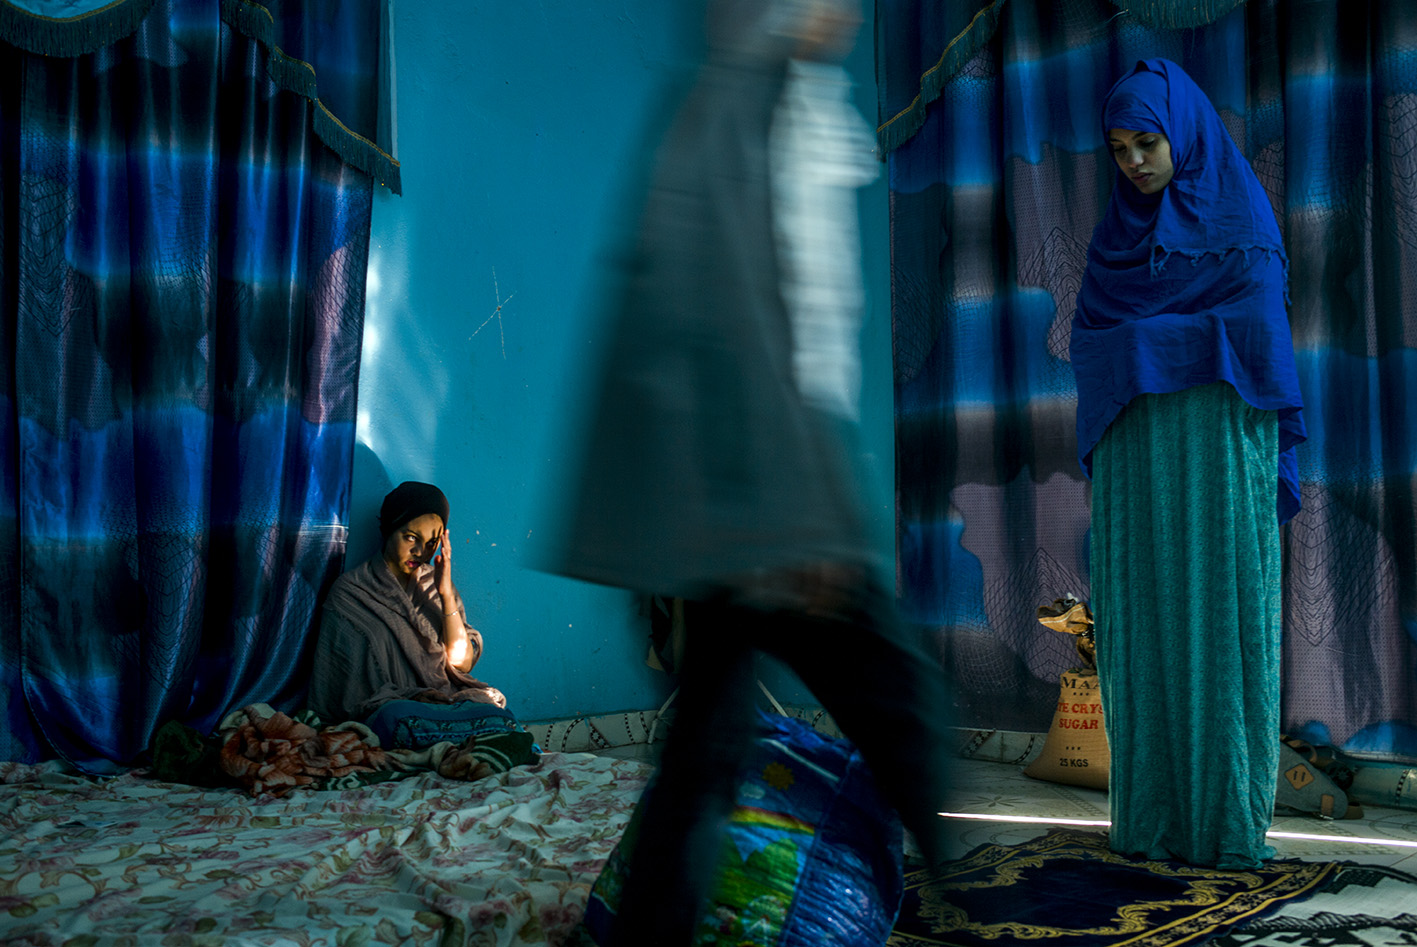 HARGEISA, SOMALILAND REGION OF SOMALIA - FEBRUARY 2018 